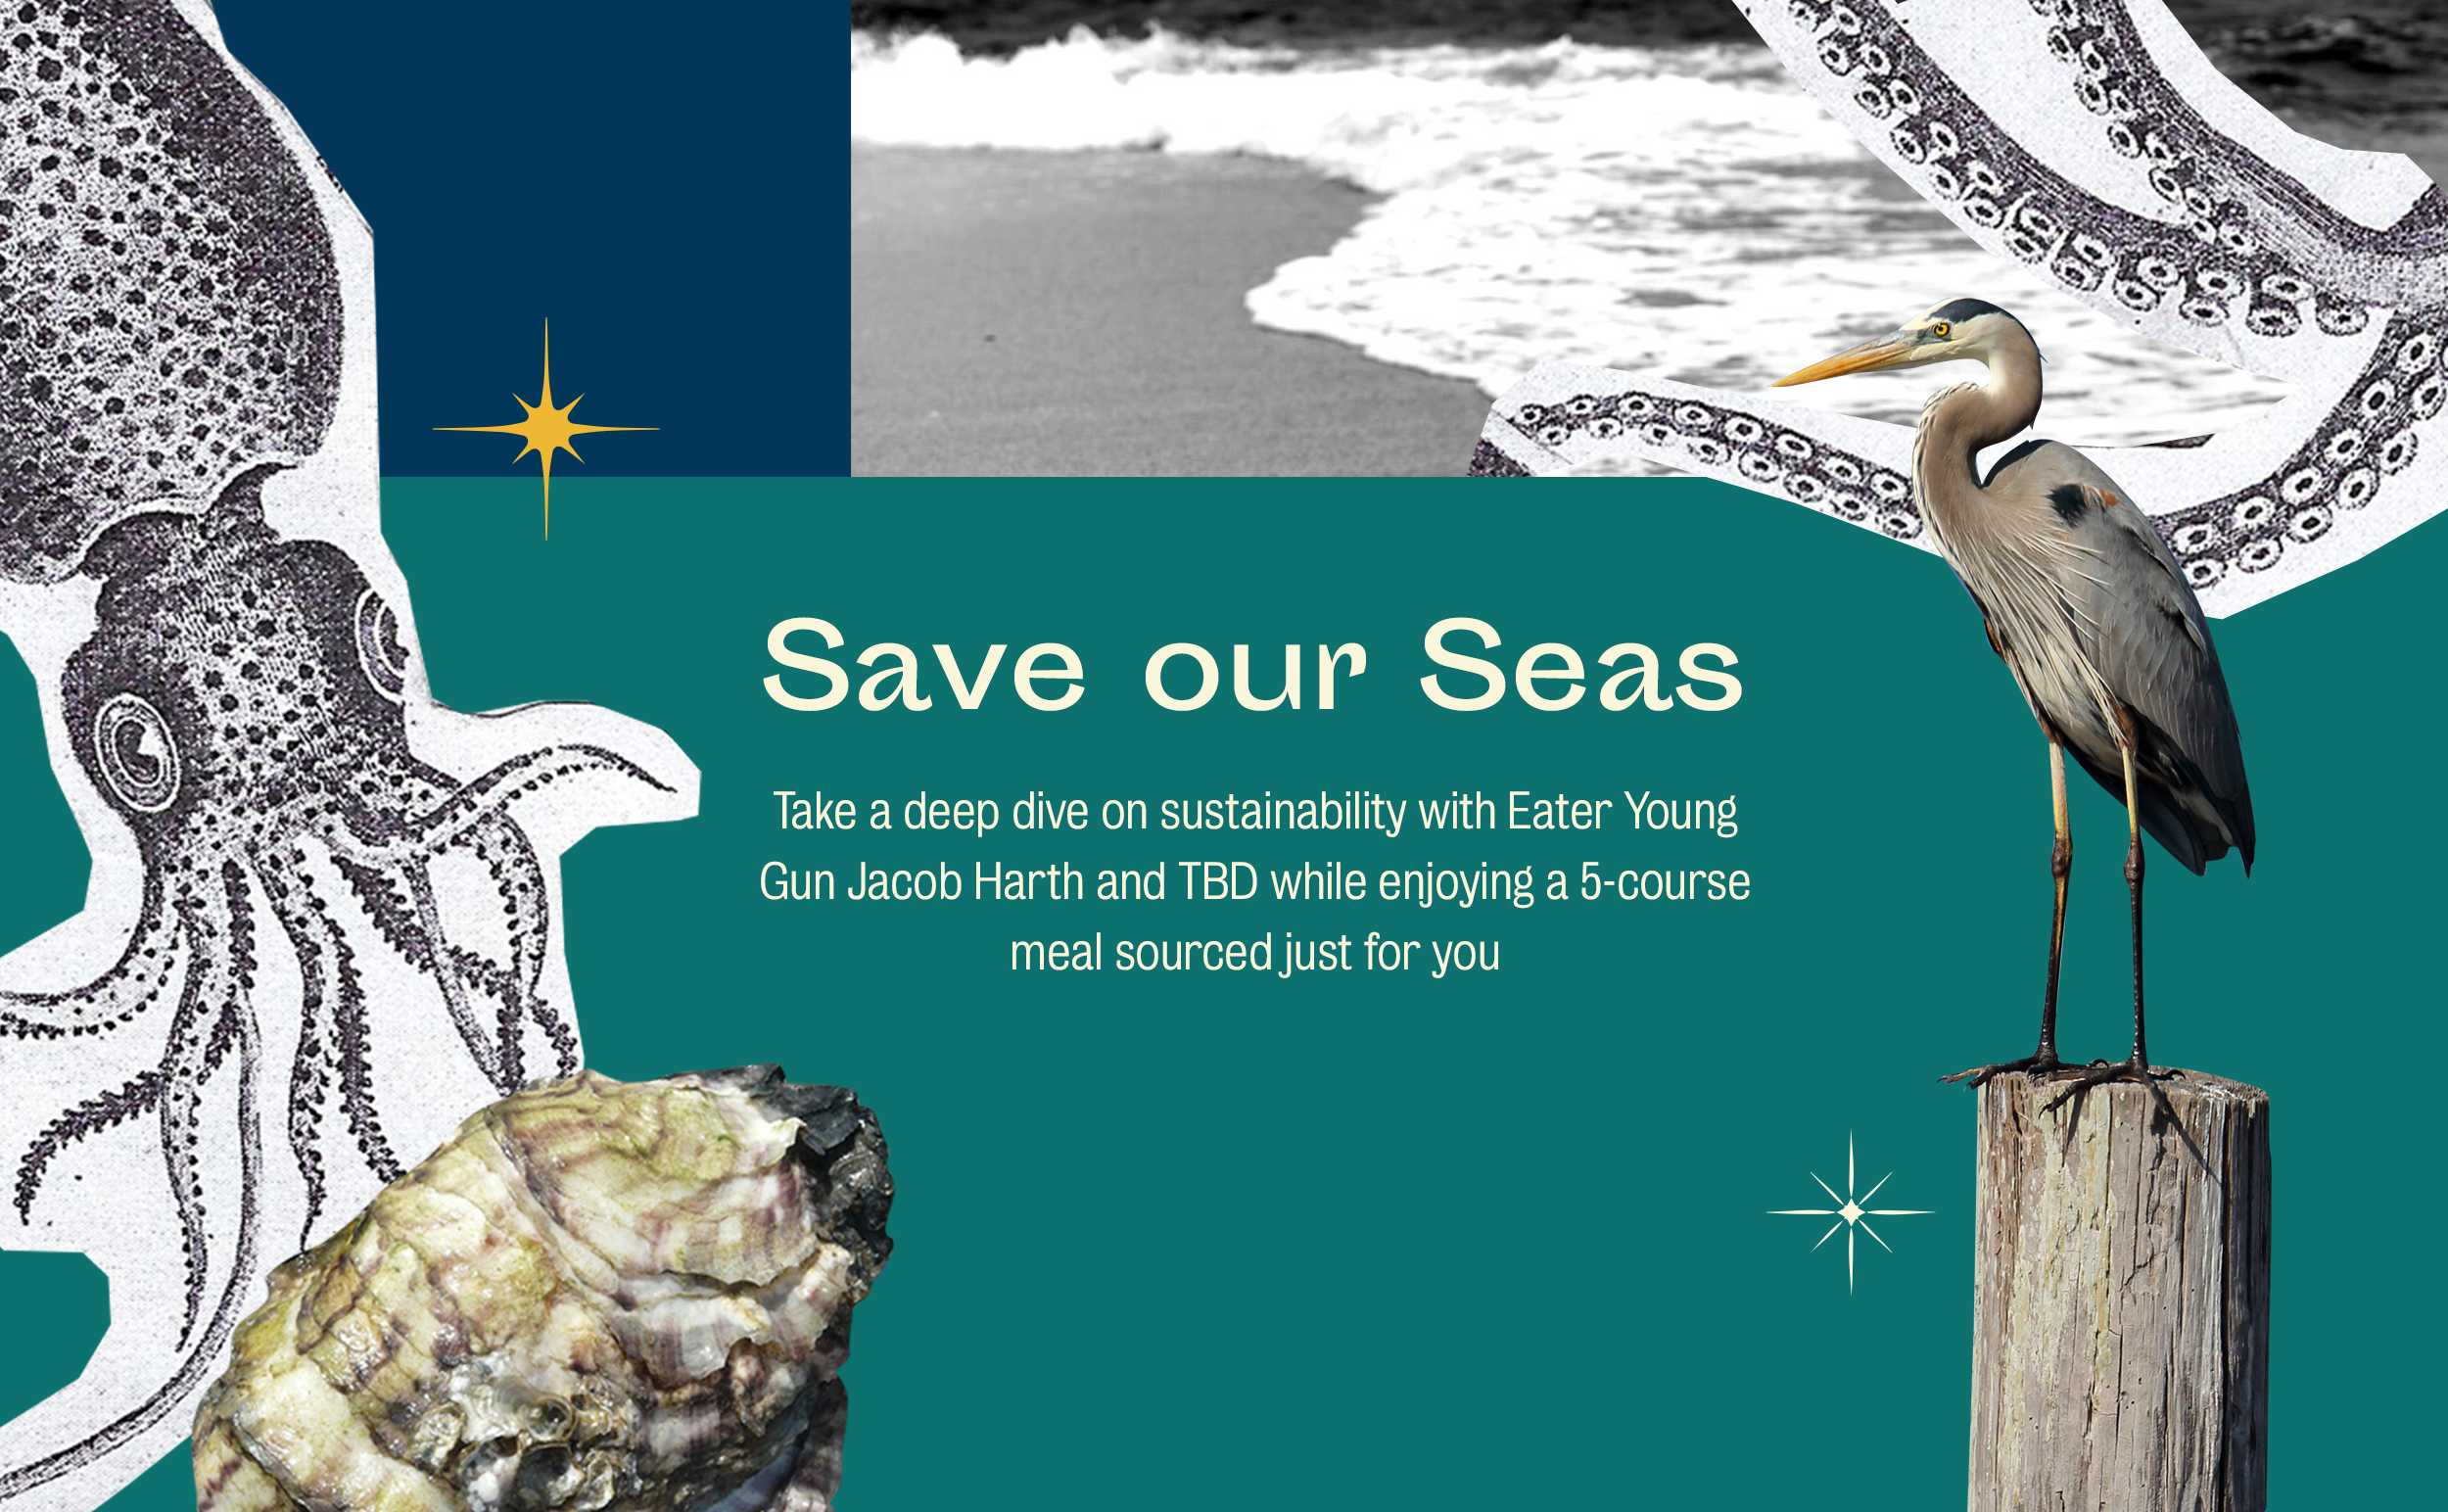 Invitation to the Save Our Seas dinner, hosted in New York City.